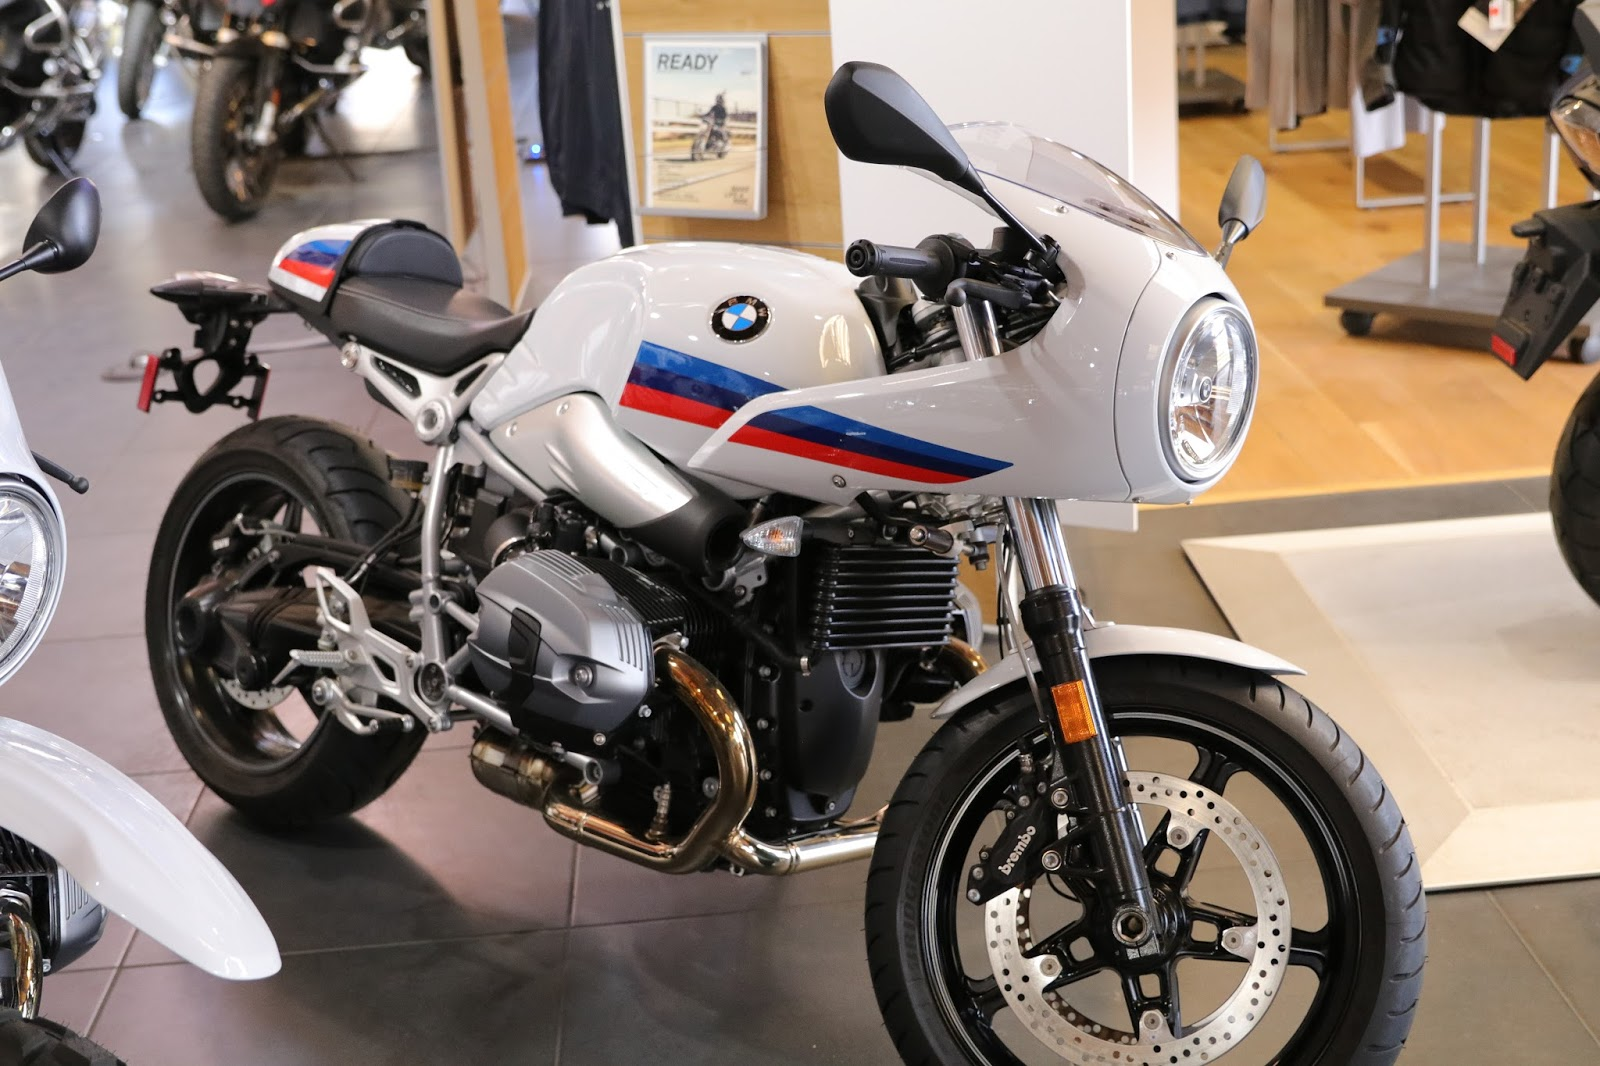 OldMotoDude: BMW RnineT Cafe Racer for sale at Foothills BMW